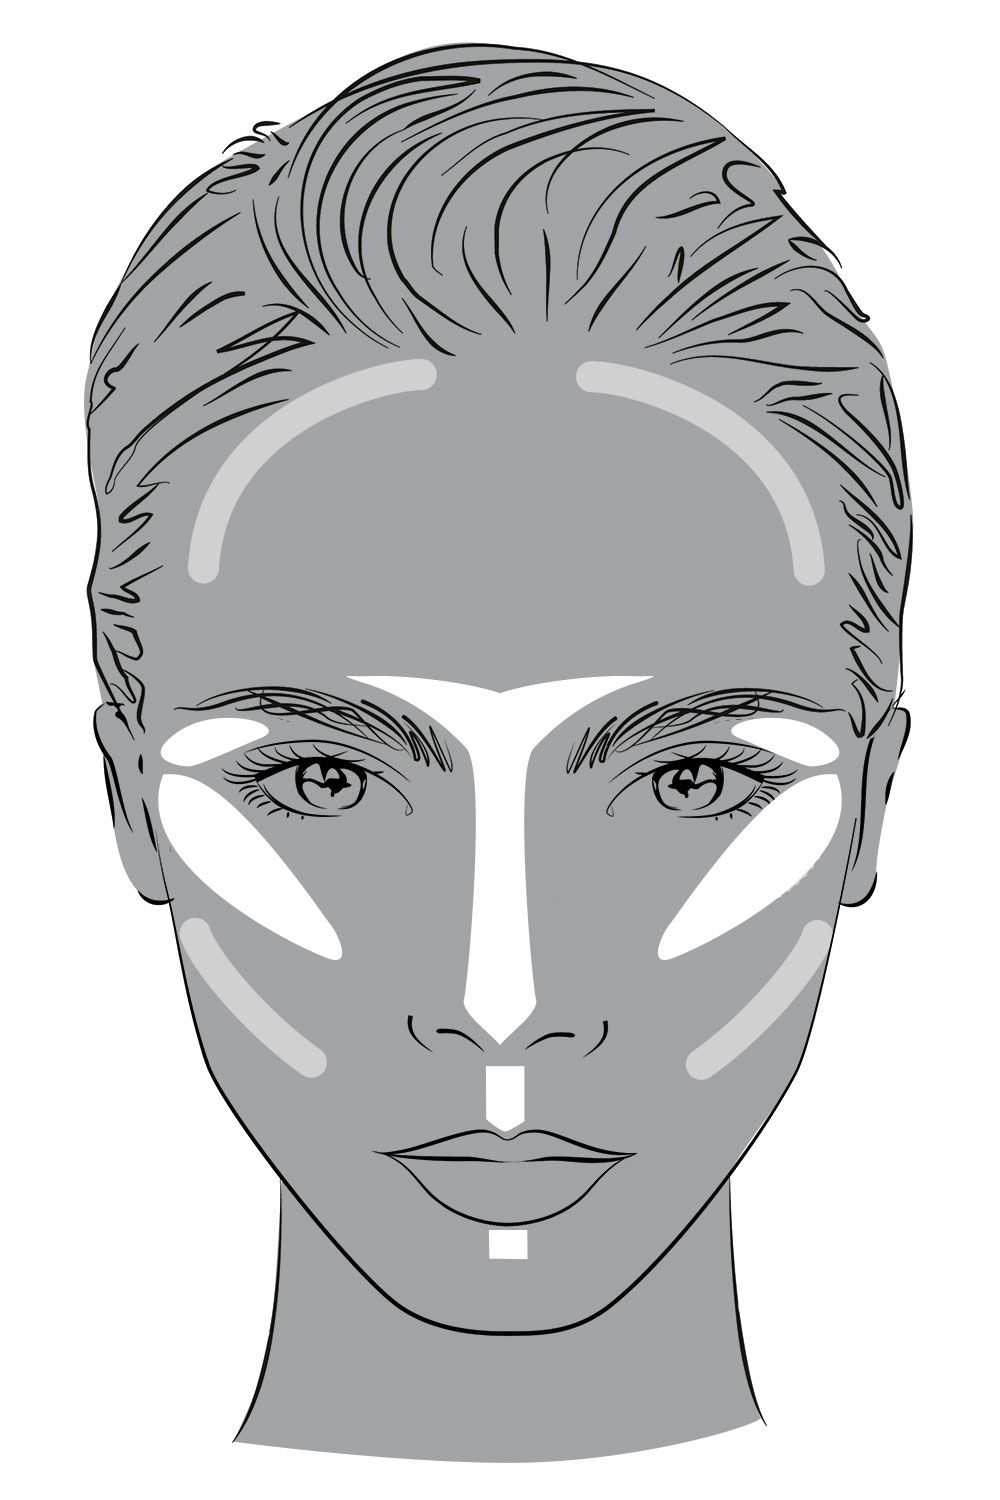 """<p>Use <a href=""""http://www.yslbeautyus.com/touche-%C3%A9clat/141YSL.html?dwvar_141YSL_color=1%20Luminous%20Radiance"""" target=""""_blank"""">YSL's Touche Éclat in 01</a>, $42, across your cheekbones, down your nose, under your brows and on your Cupid's bow to highlight. </p>"""